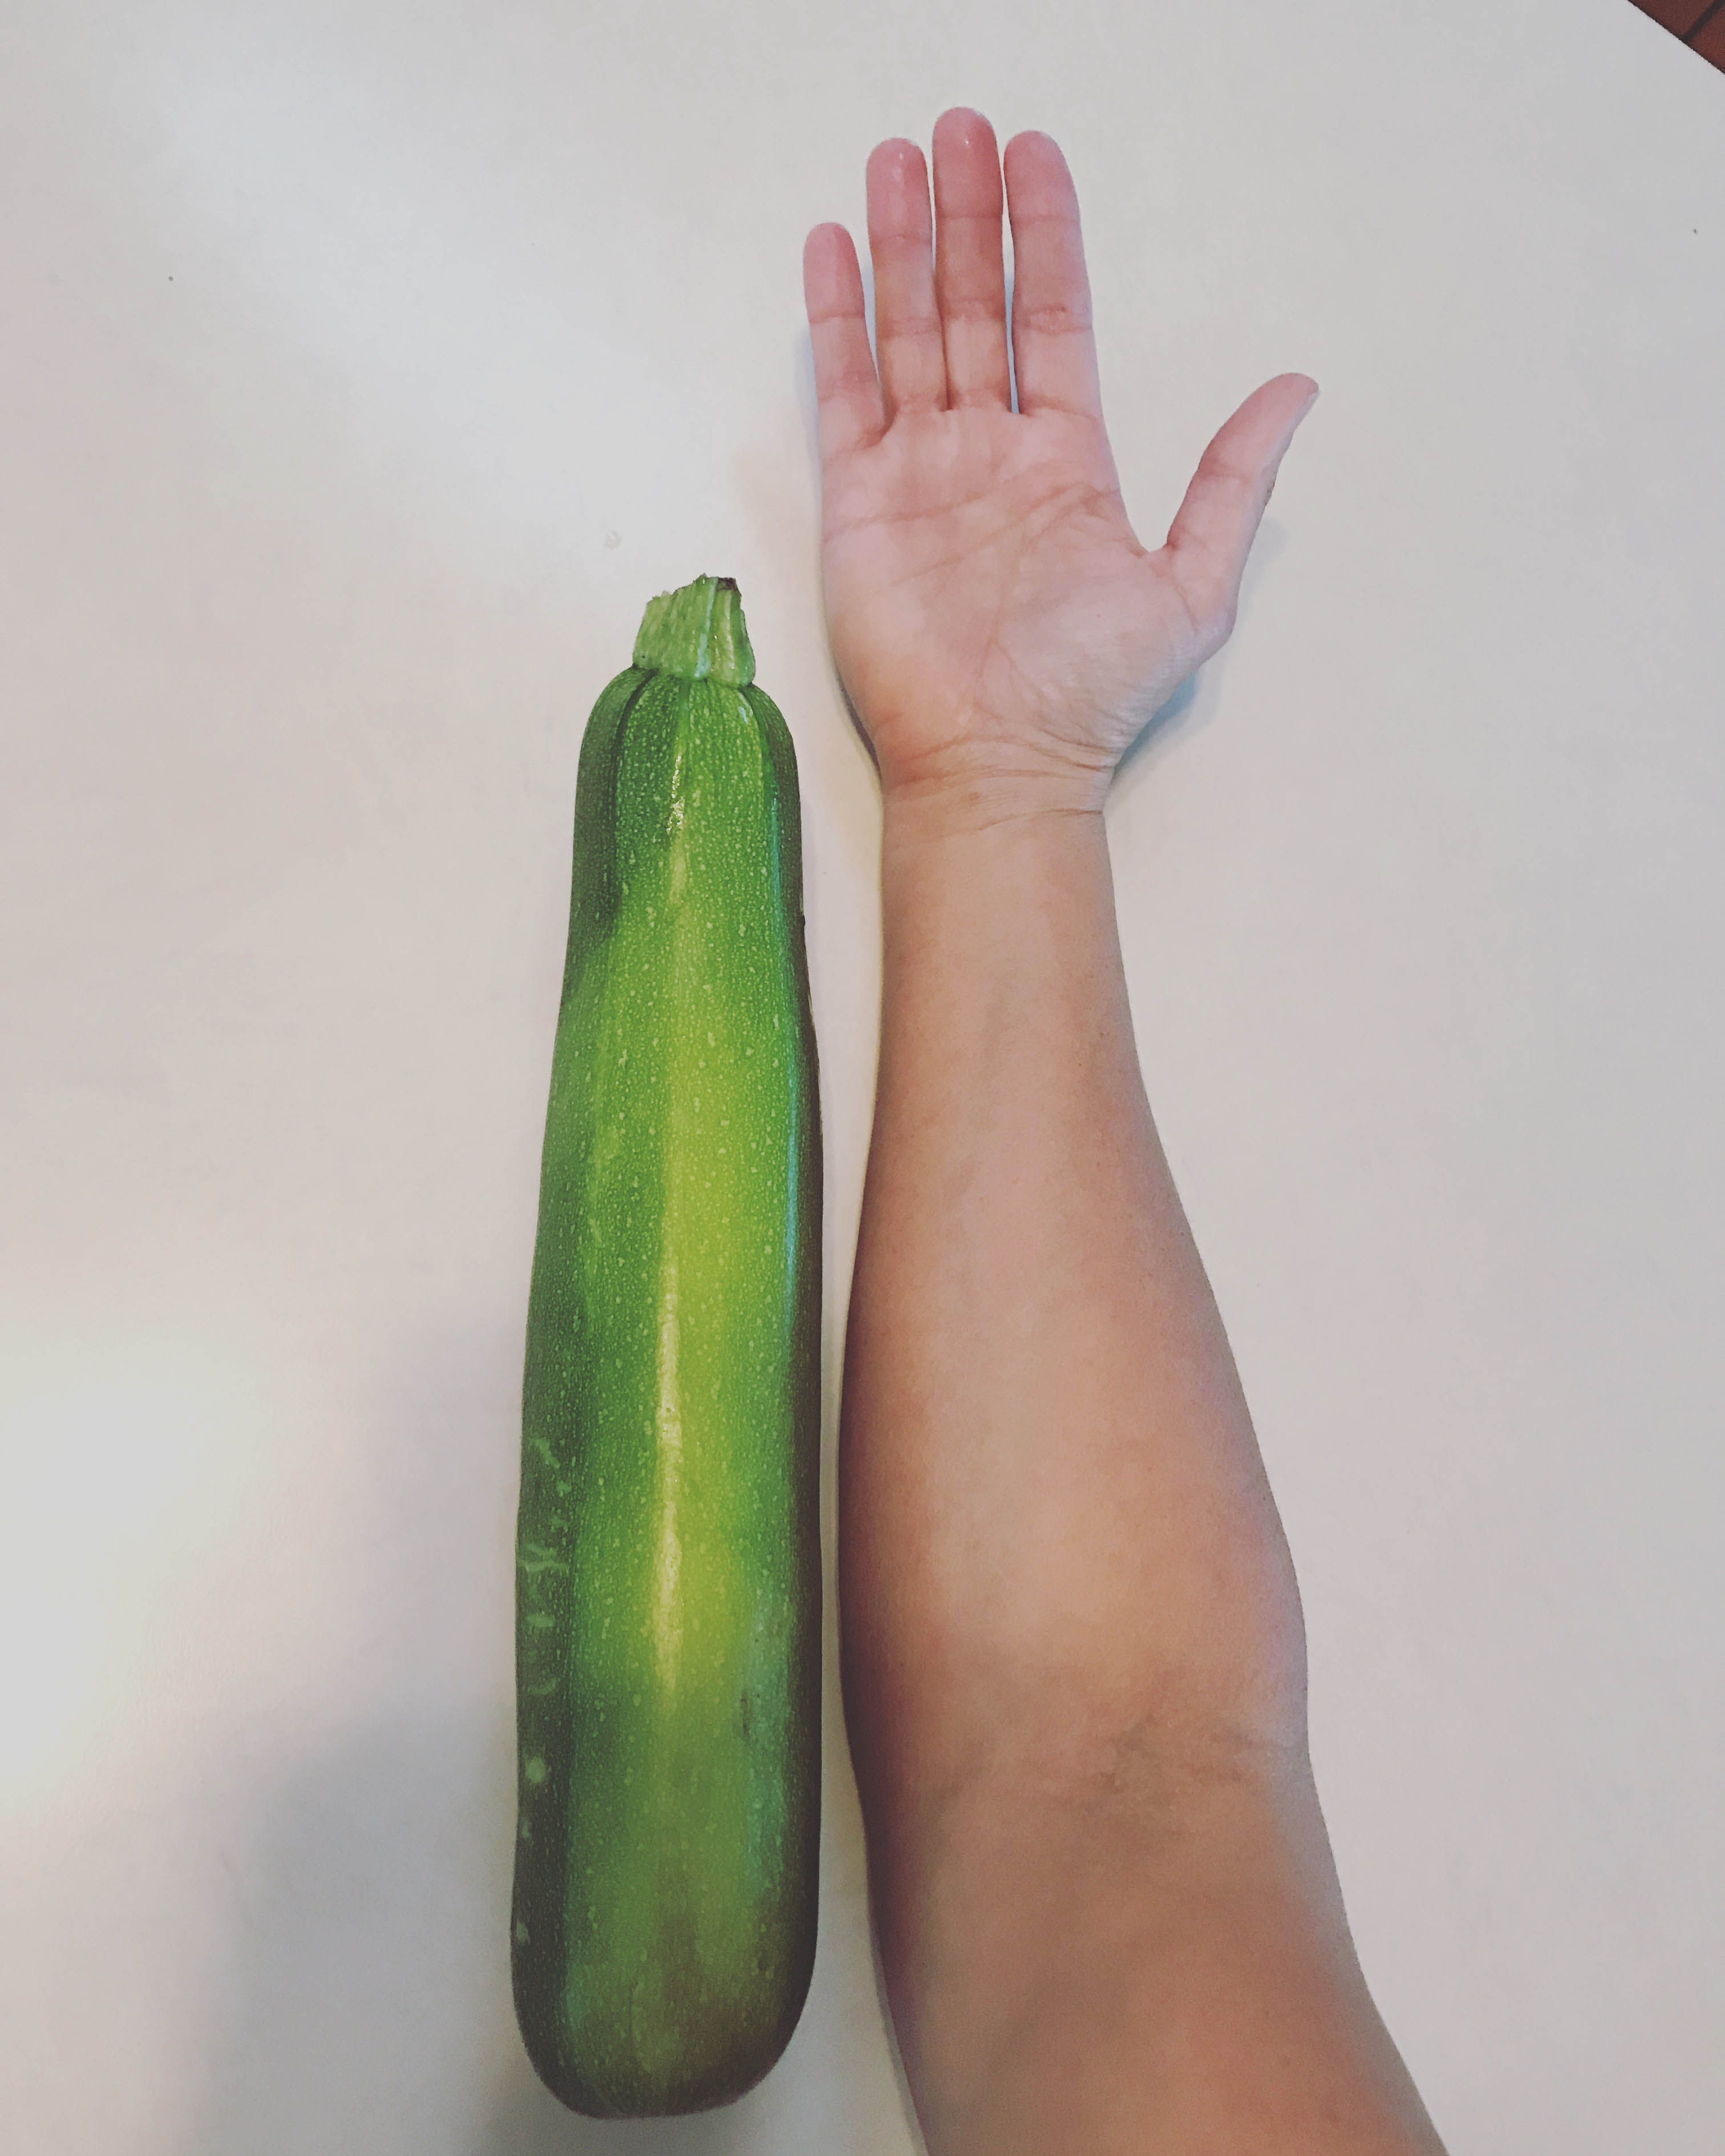 VERY large zucchini. Forearm for scale